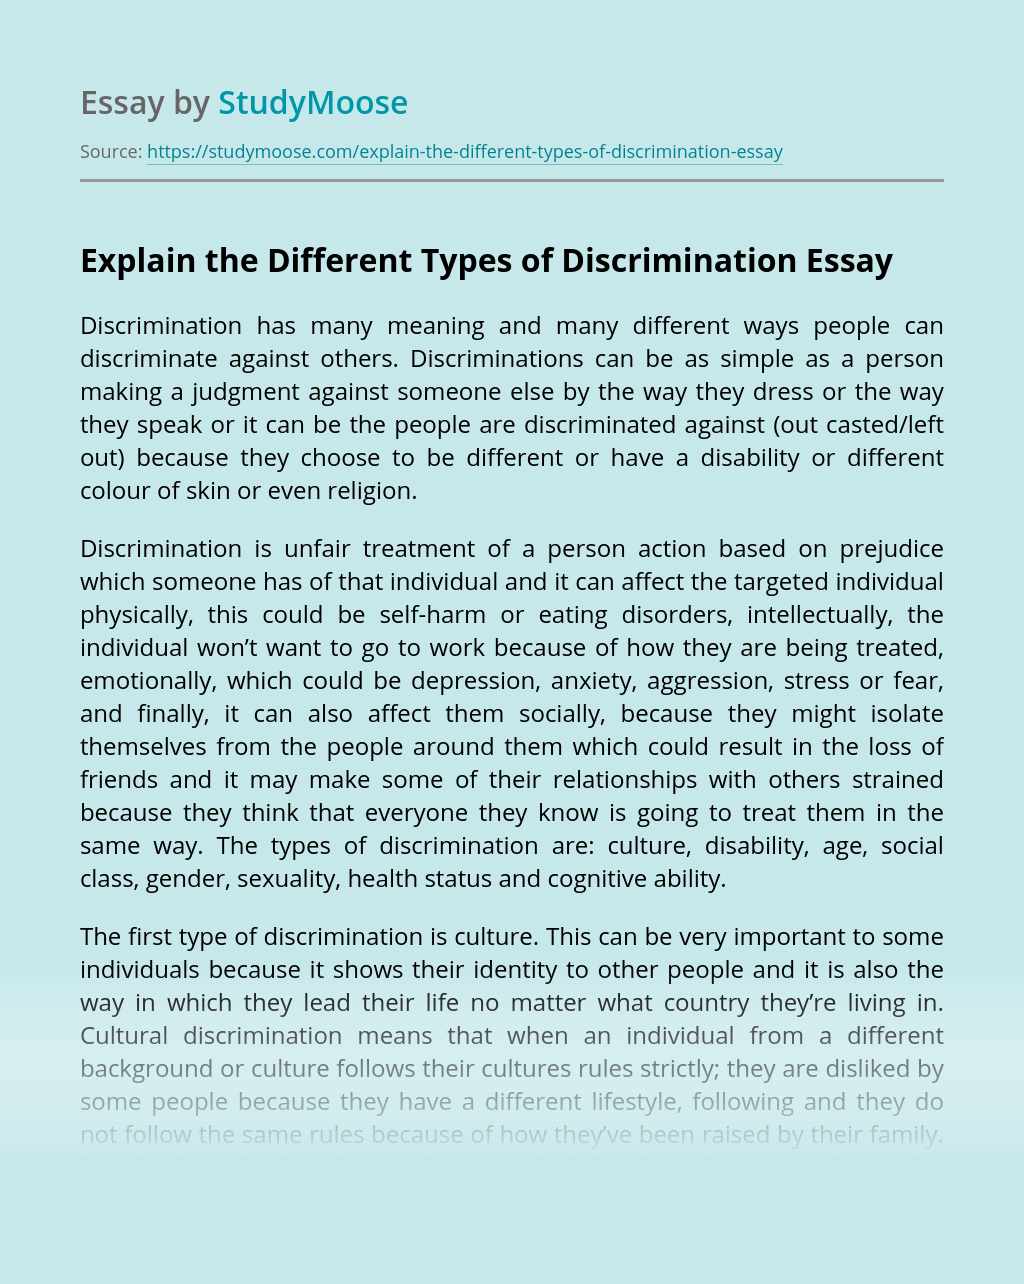 Explain the Different Types of Discrimination